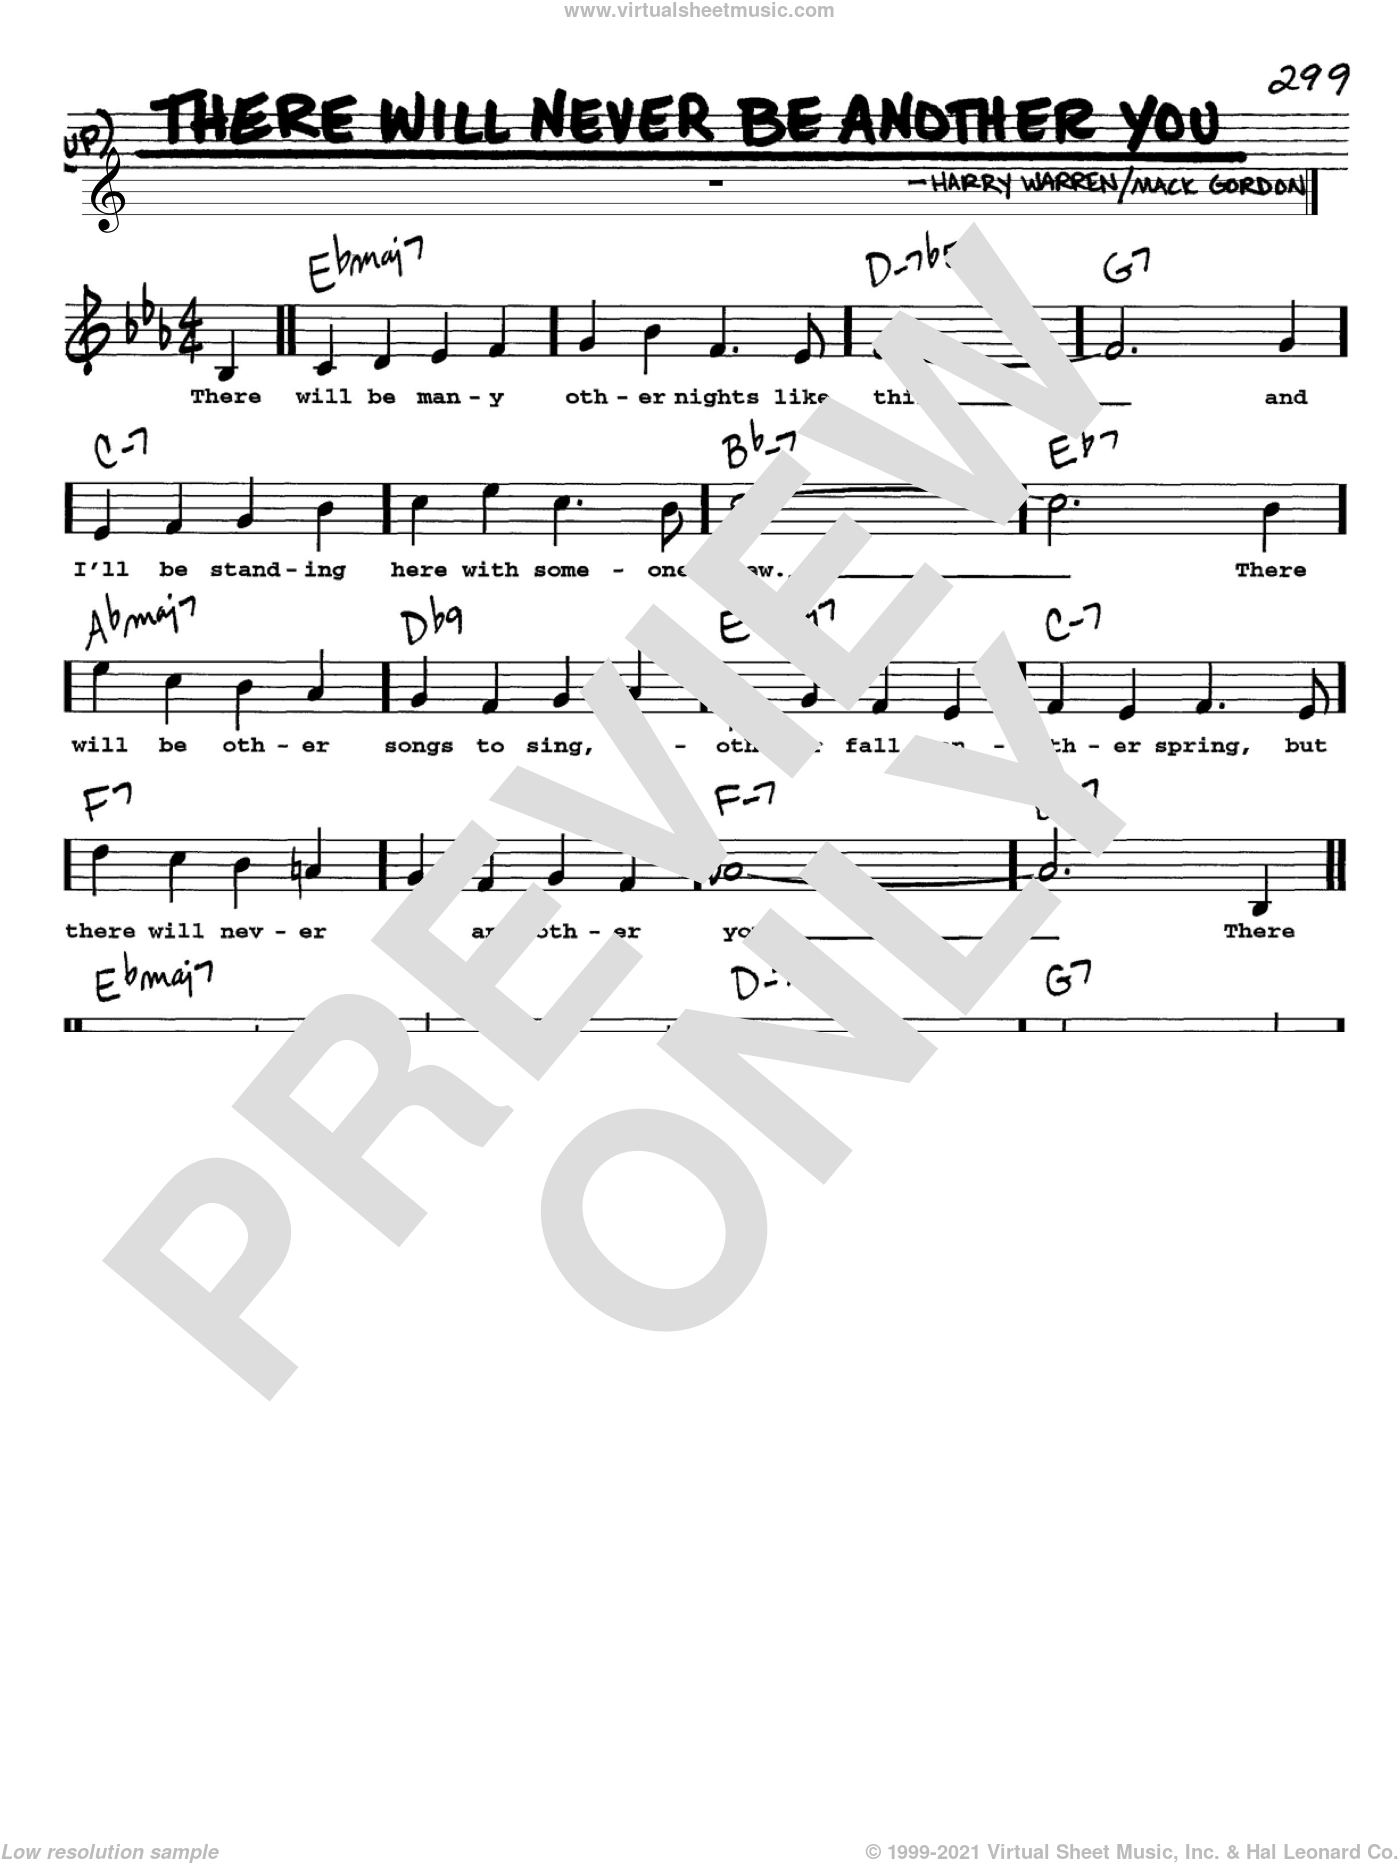 There Will Never Be Another You sheet music for voice and other instruments (Vocal Volume 1) by Harry Warren and Mack Gordon. Score Image Preview.